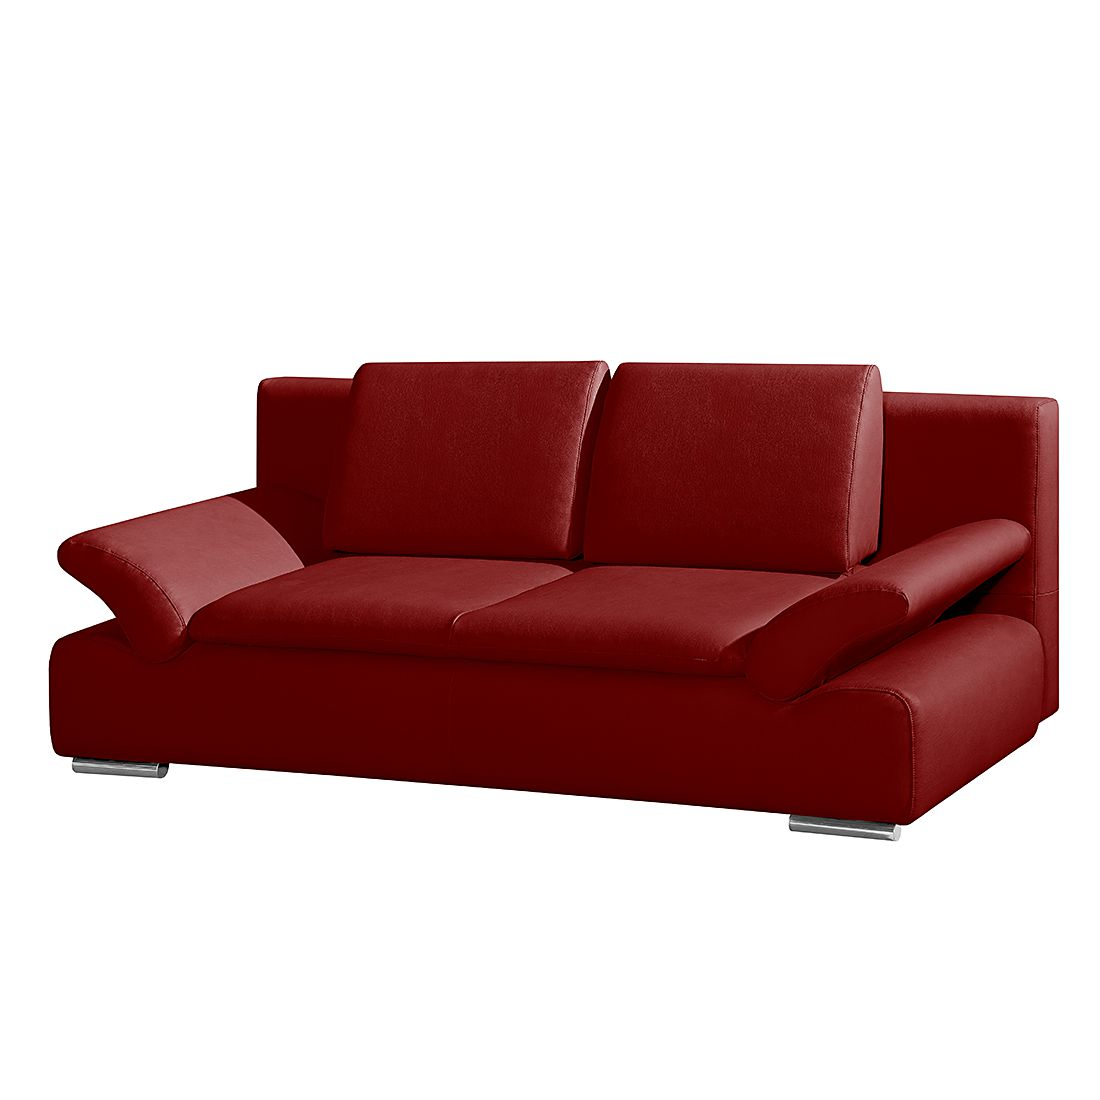 schlafsofa norris echtleder rot modoform g nstig. Black Bedroom Furniture Sets. Home Design Ideas